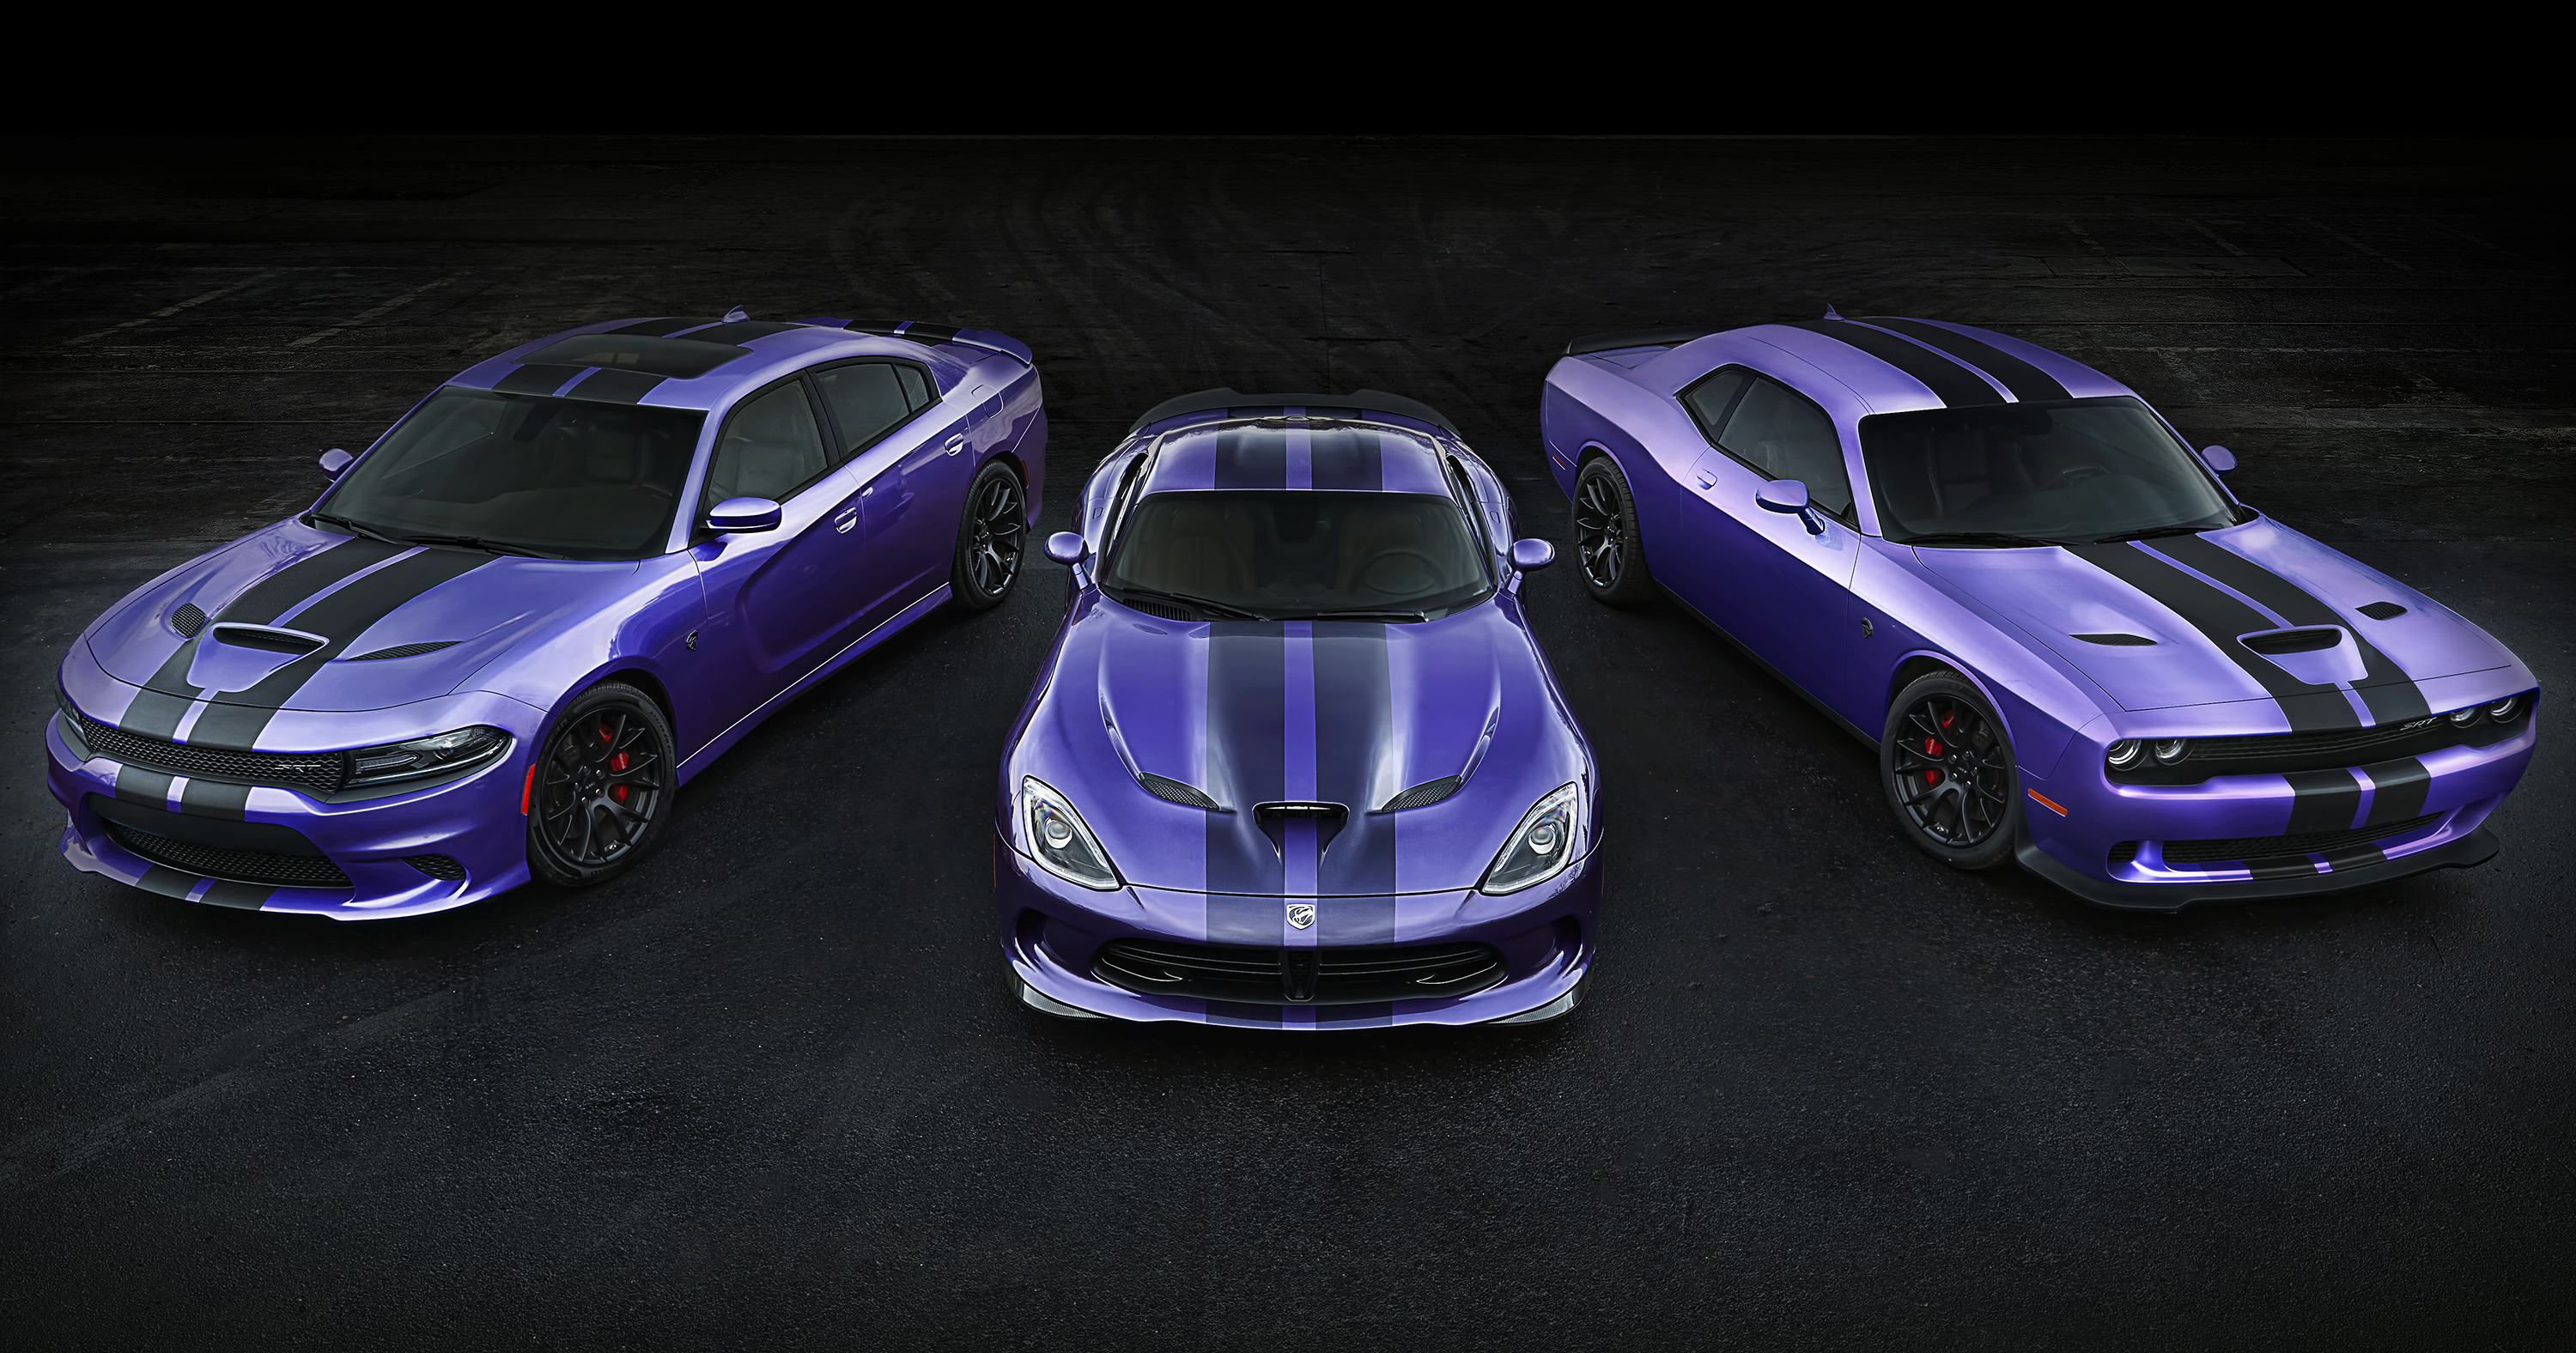 2016 CHALLENGER AND CHARGER SRT HELLCAT EARN STRIPES